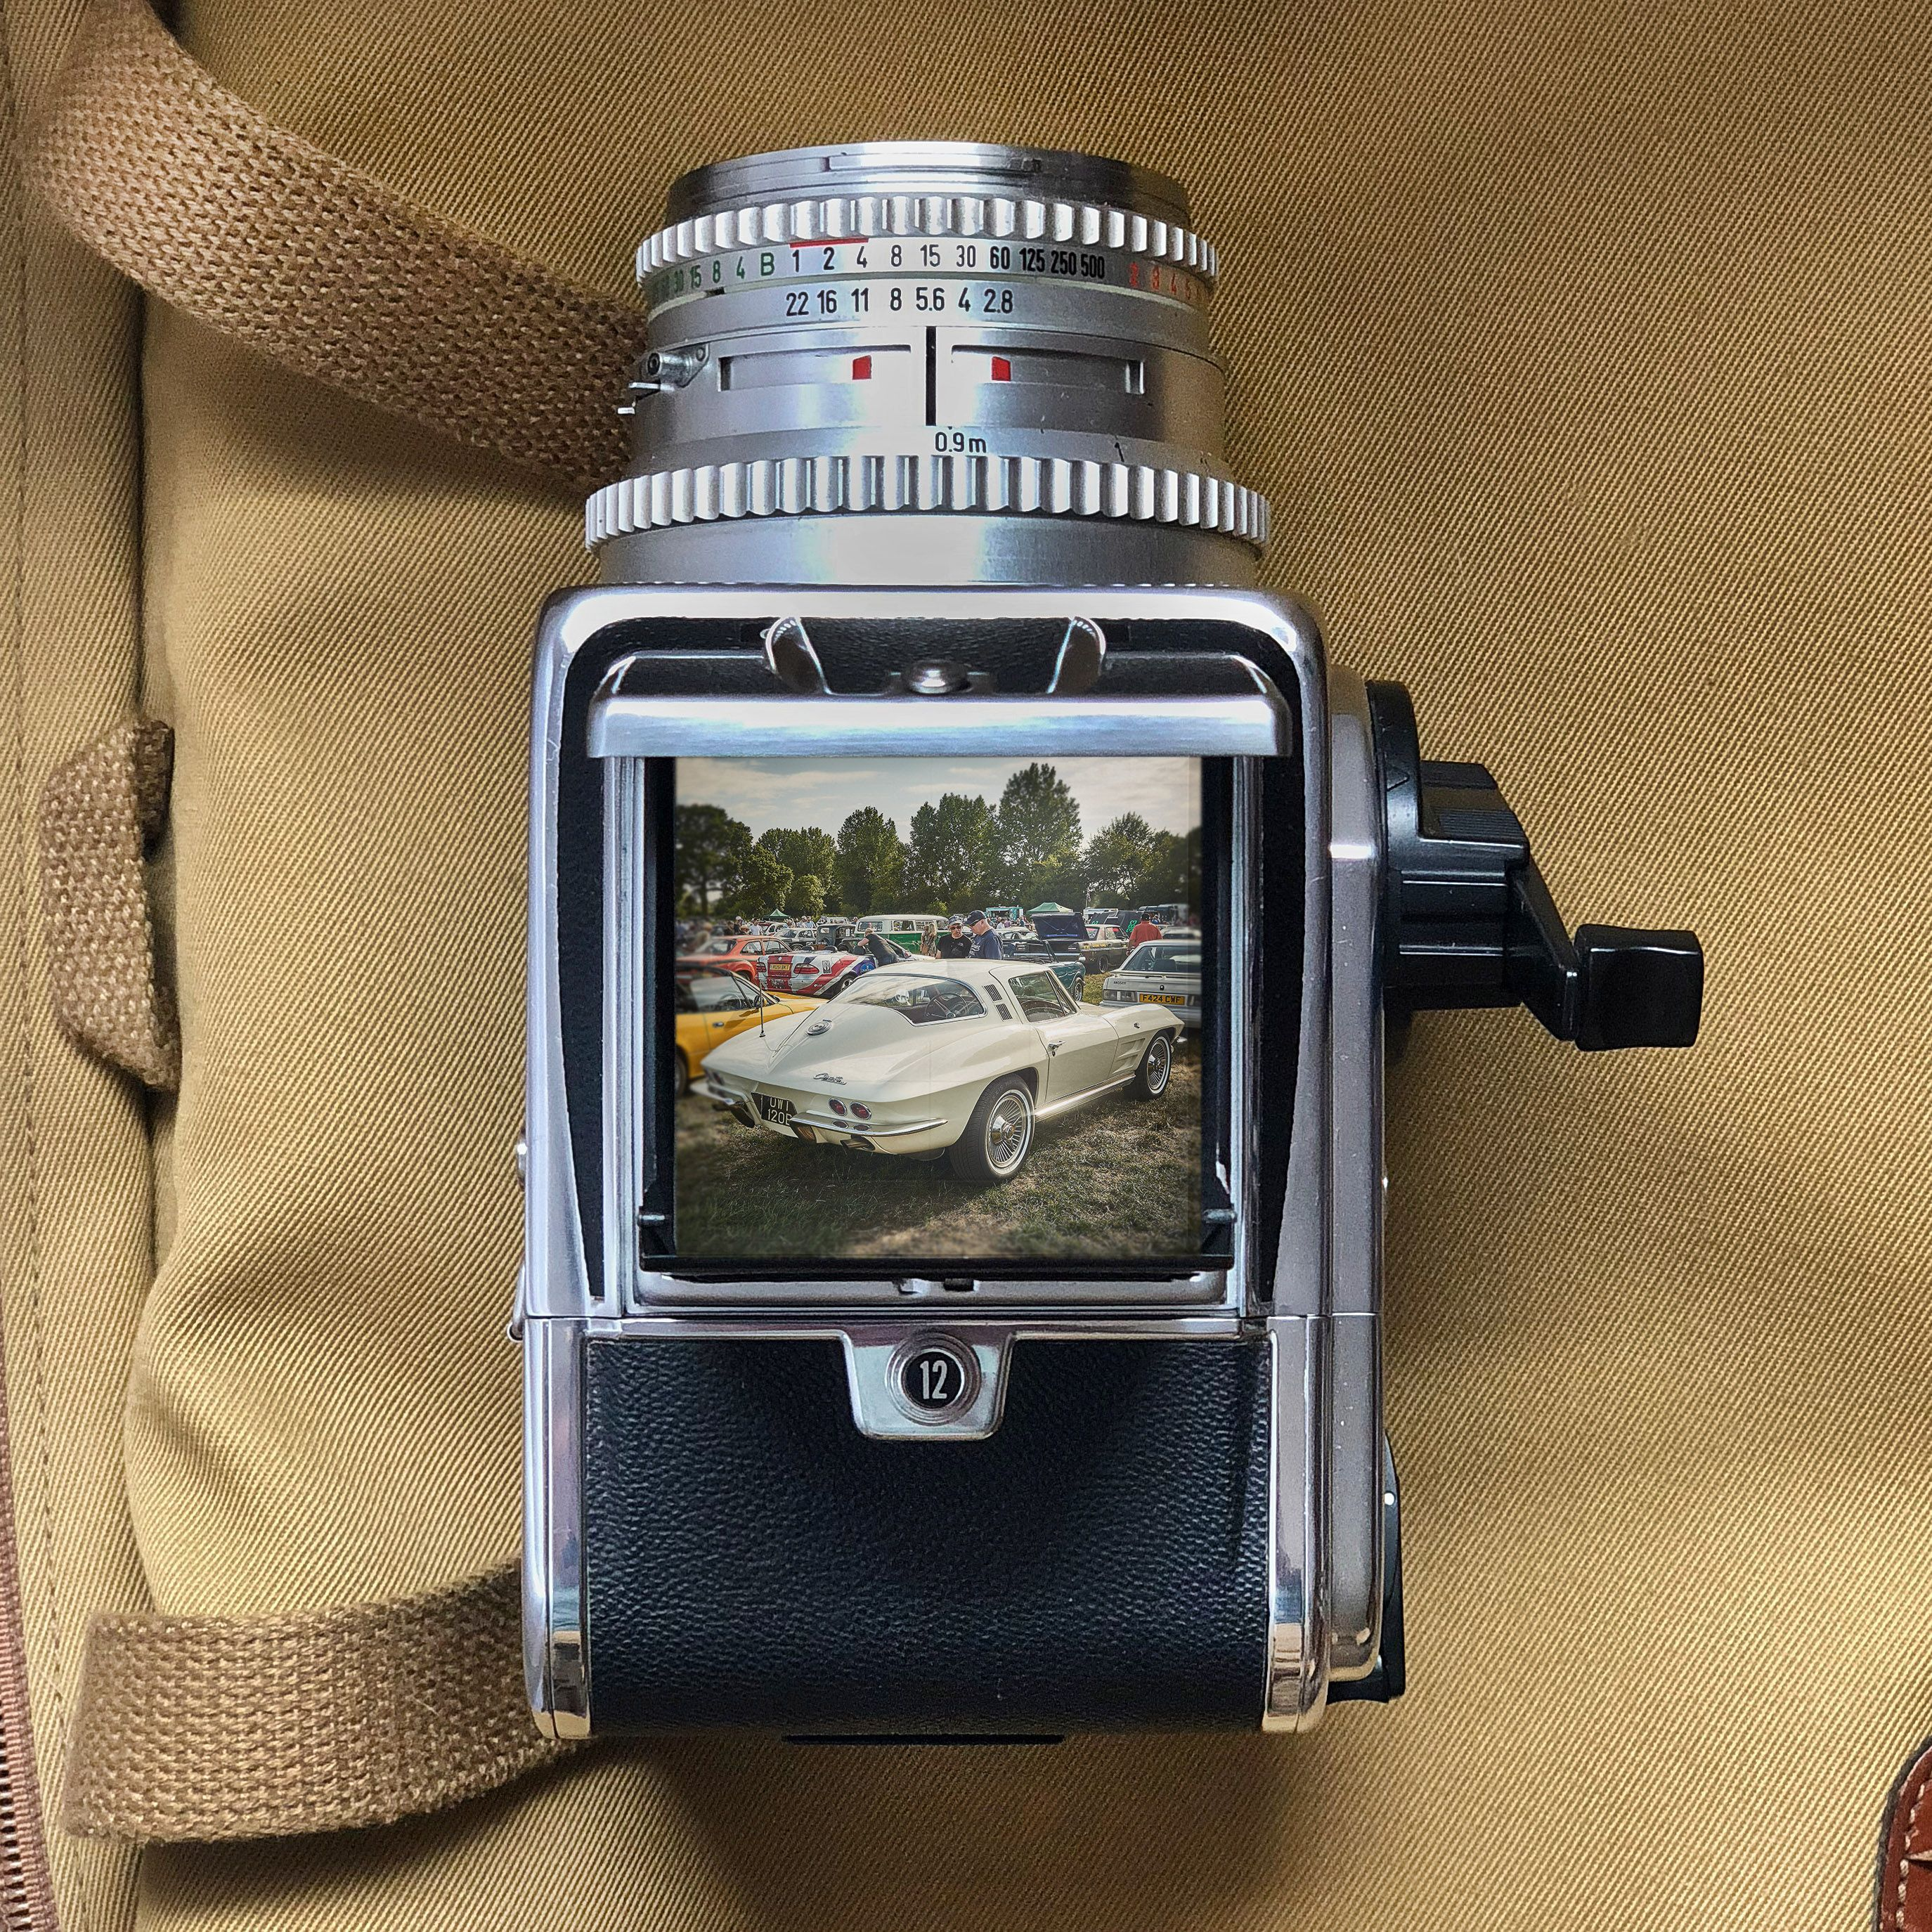 Hasselblad 500 CM with the classic chrome 80mm f2 8 lens